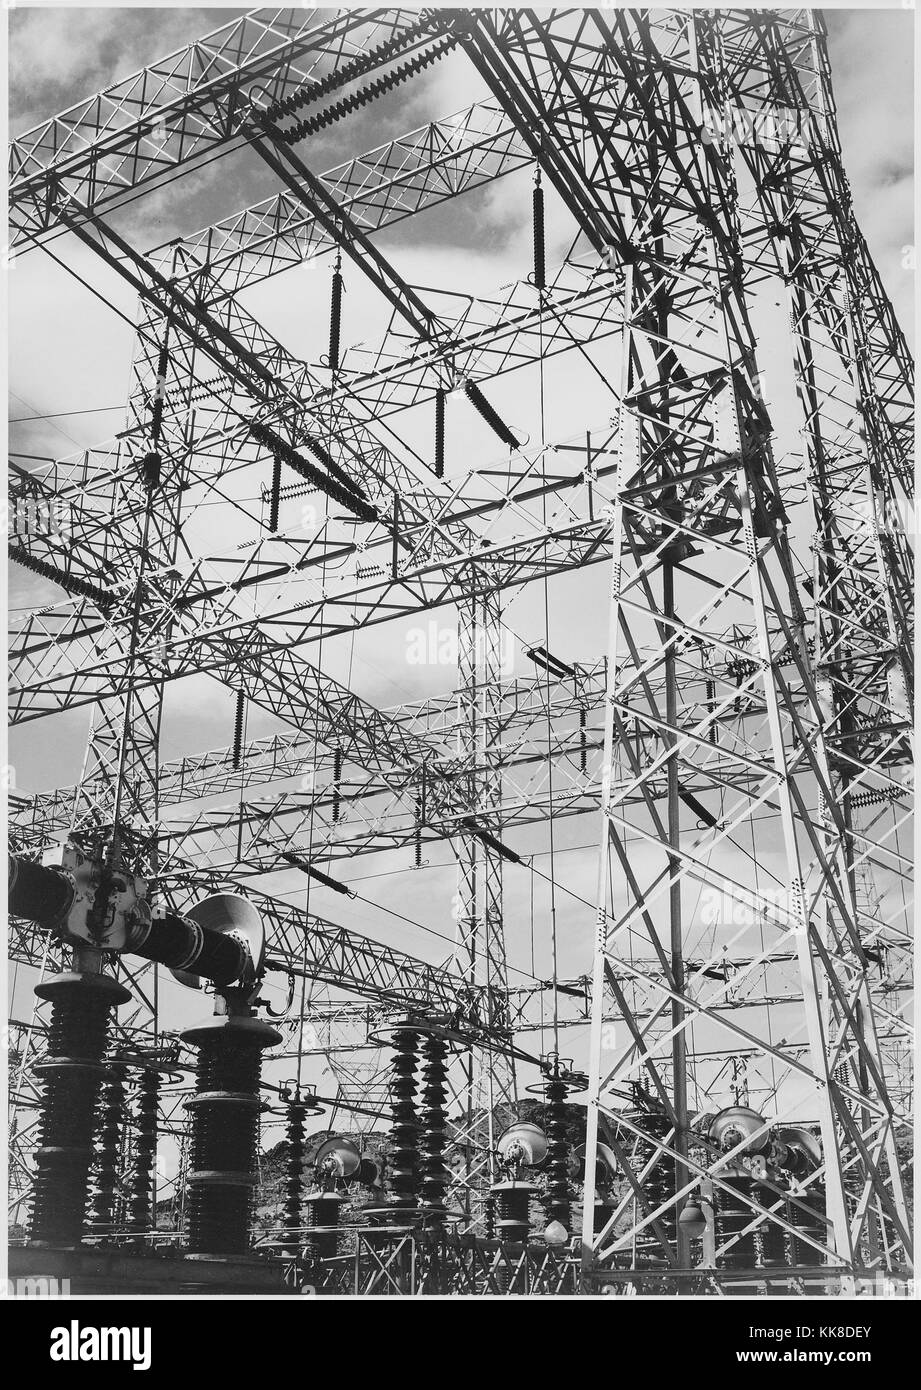 Units Black And White Stock Photos Images Alamy Trailer Wiring Diagram For Adams Photograph Looking Up At Wires Of The Boulder Dam Power Ansel Photographs